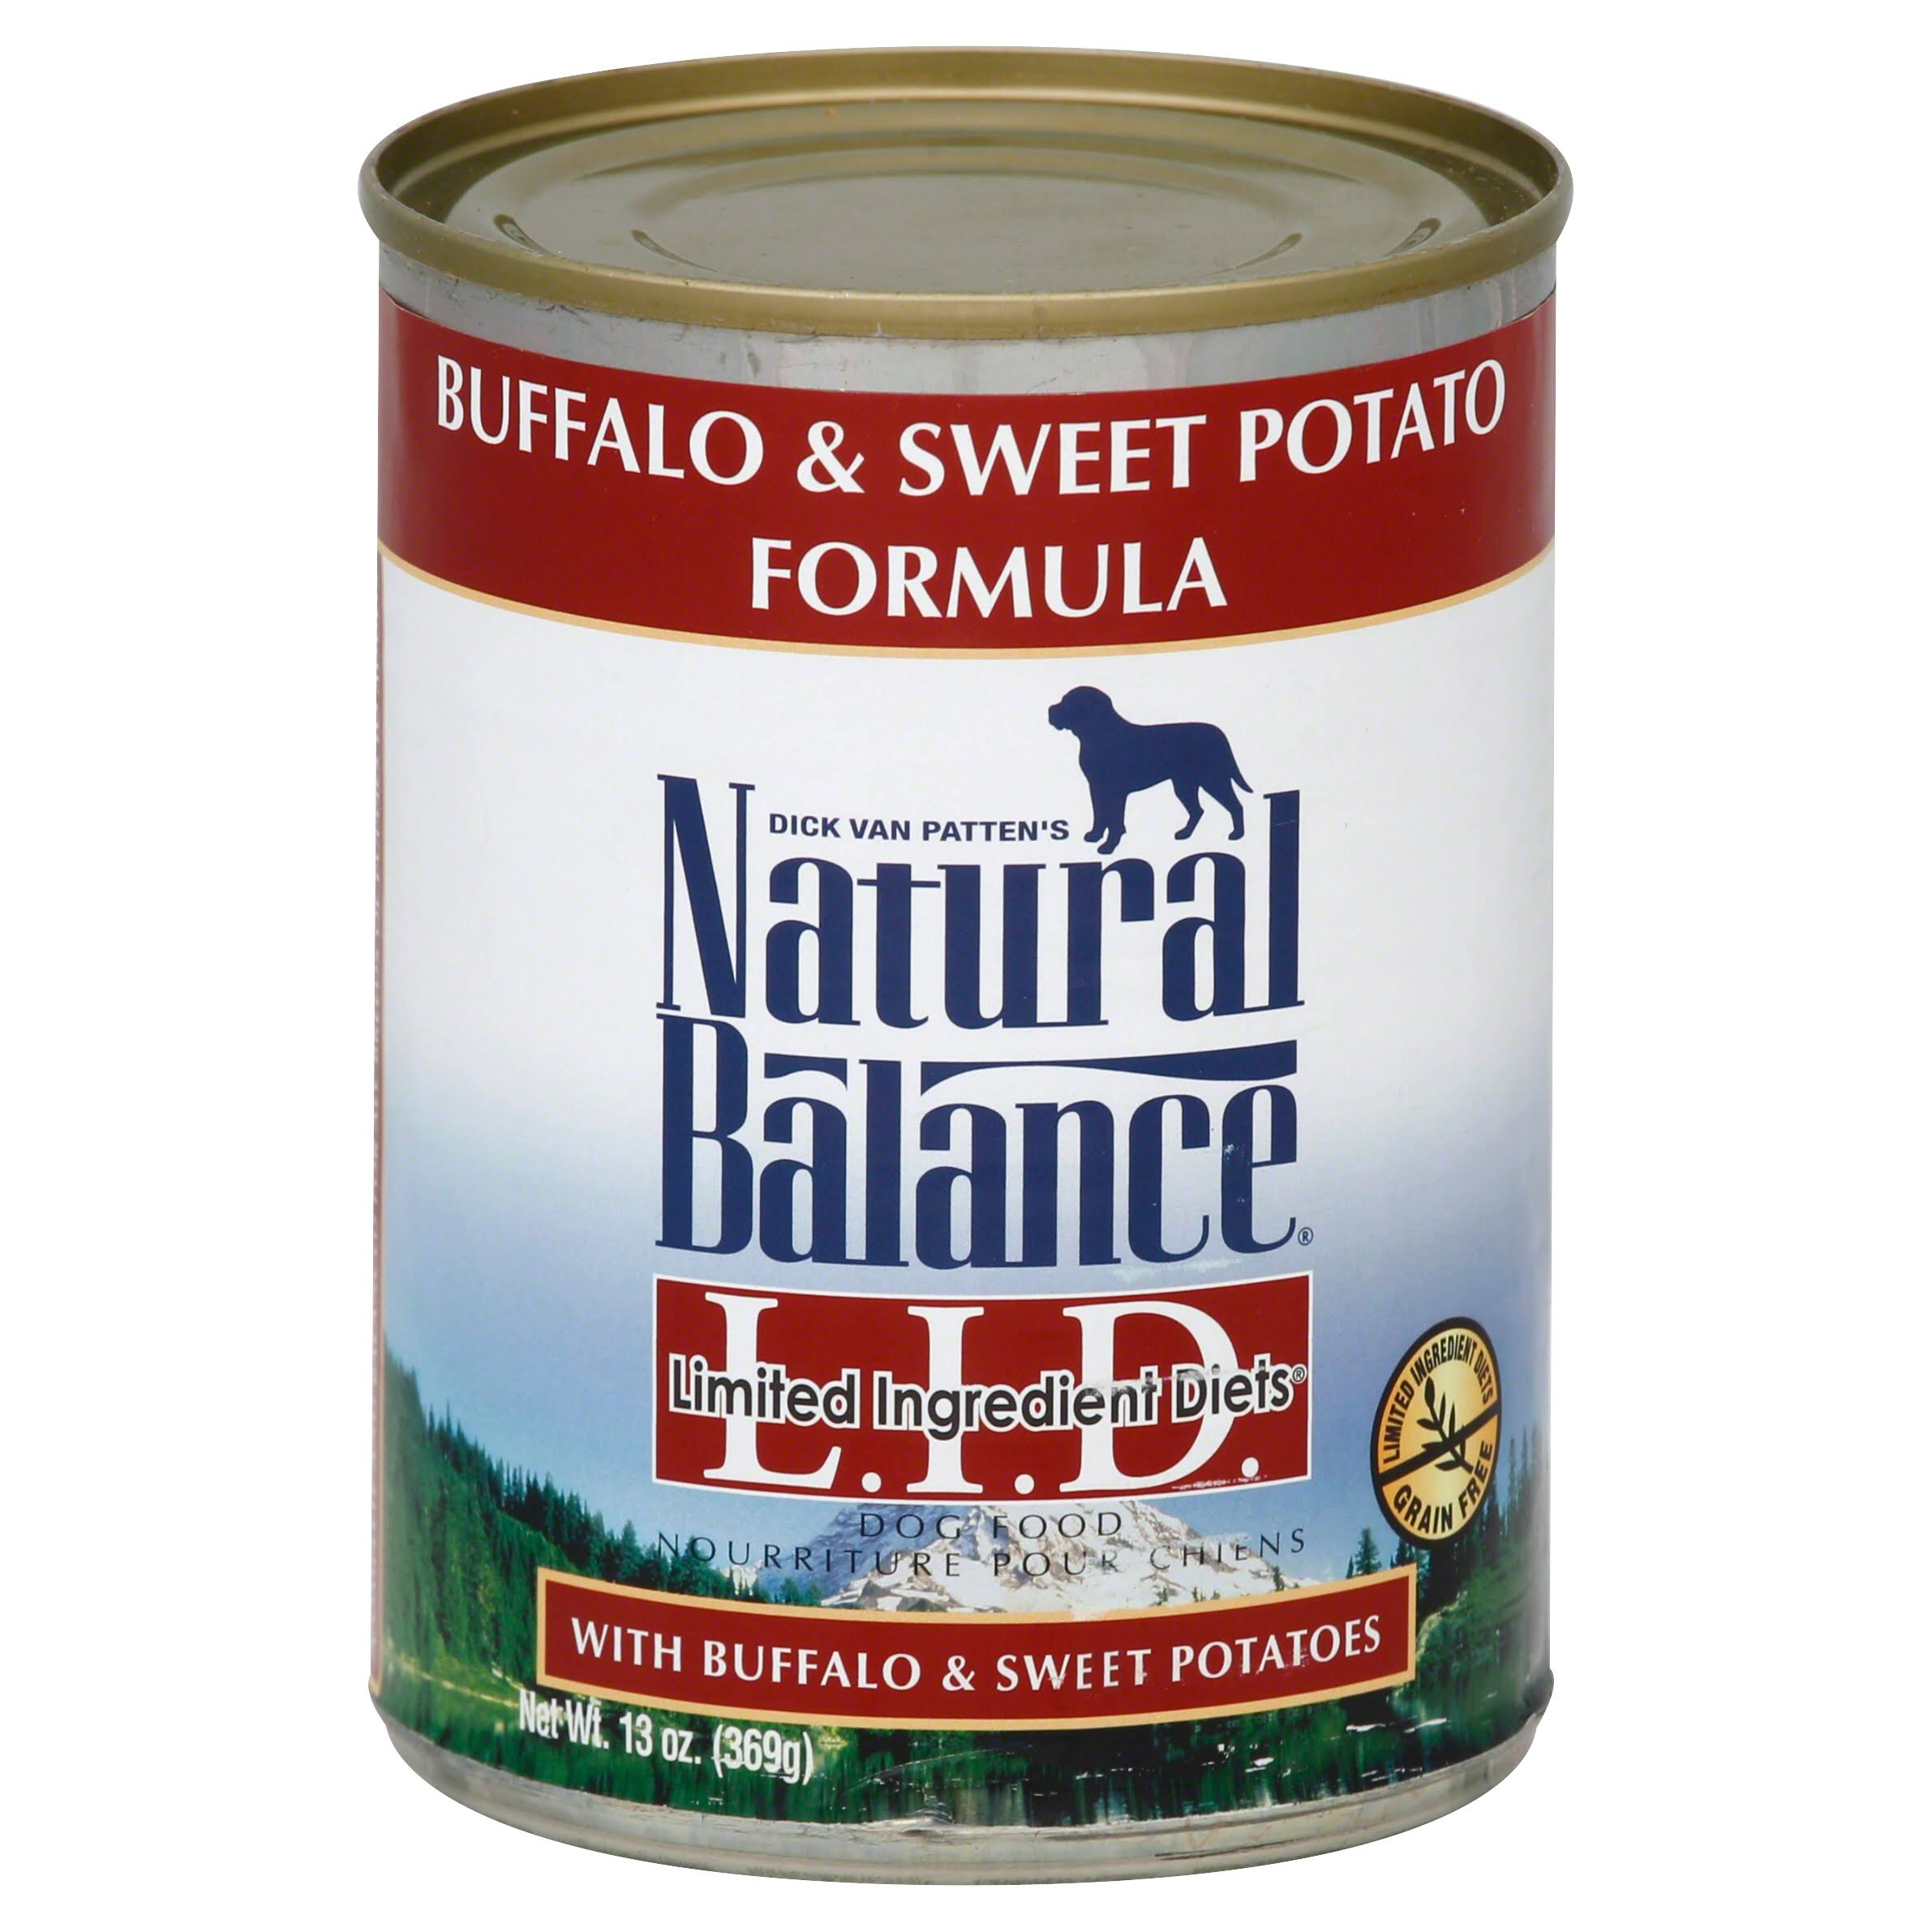 Natural Balance L.I.D. Limited Ingredient Diets Dog Food, Buffalo & Sweet Potato Formula - 13 oz